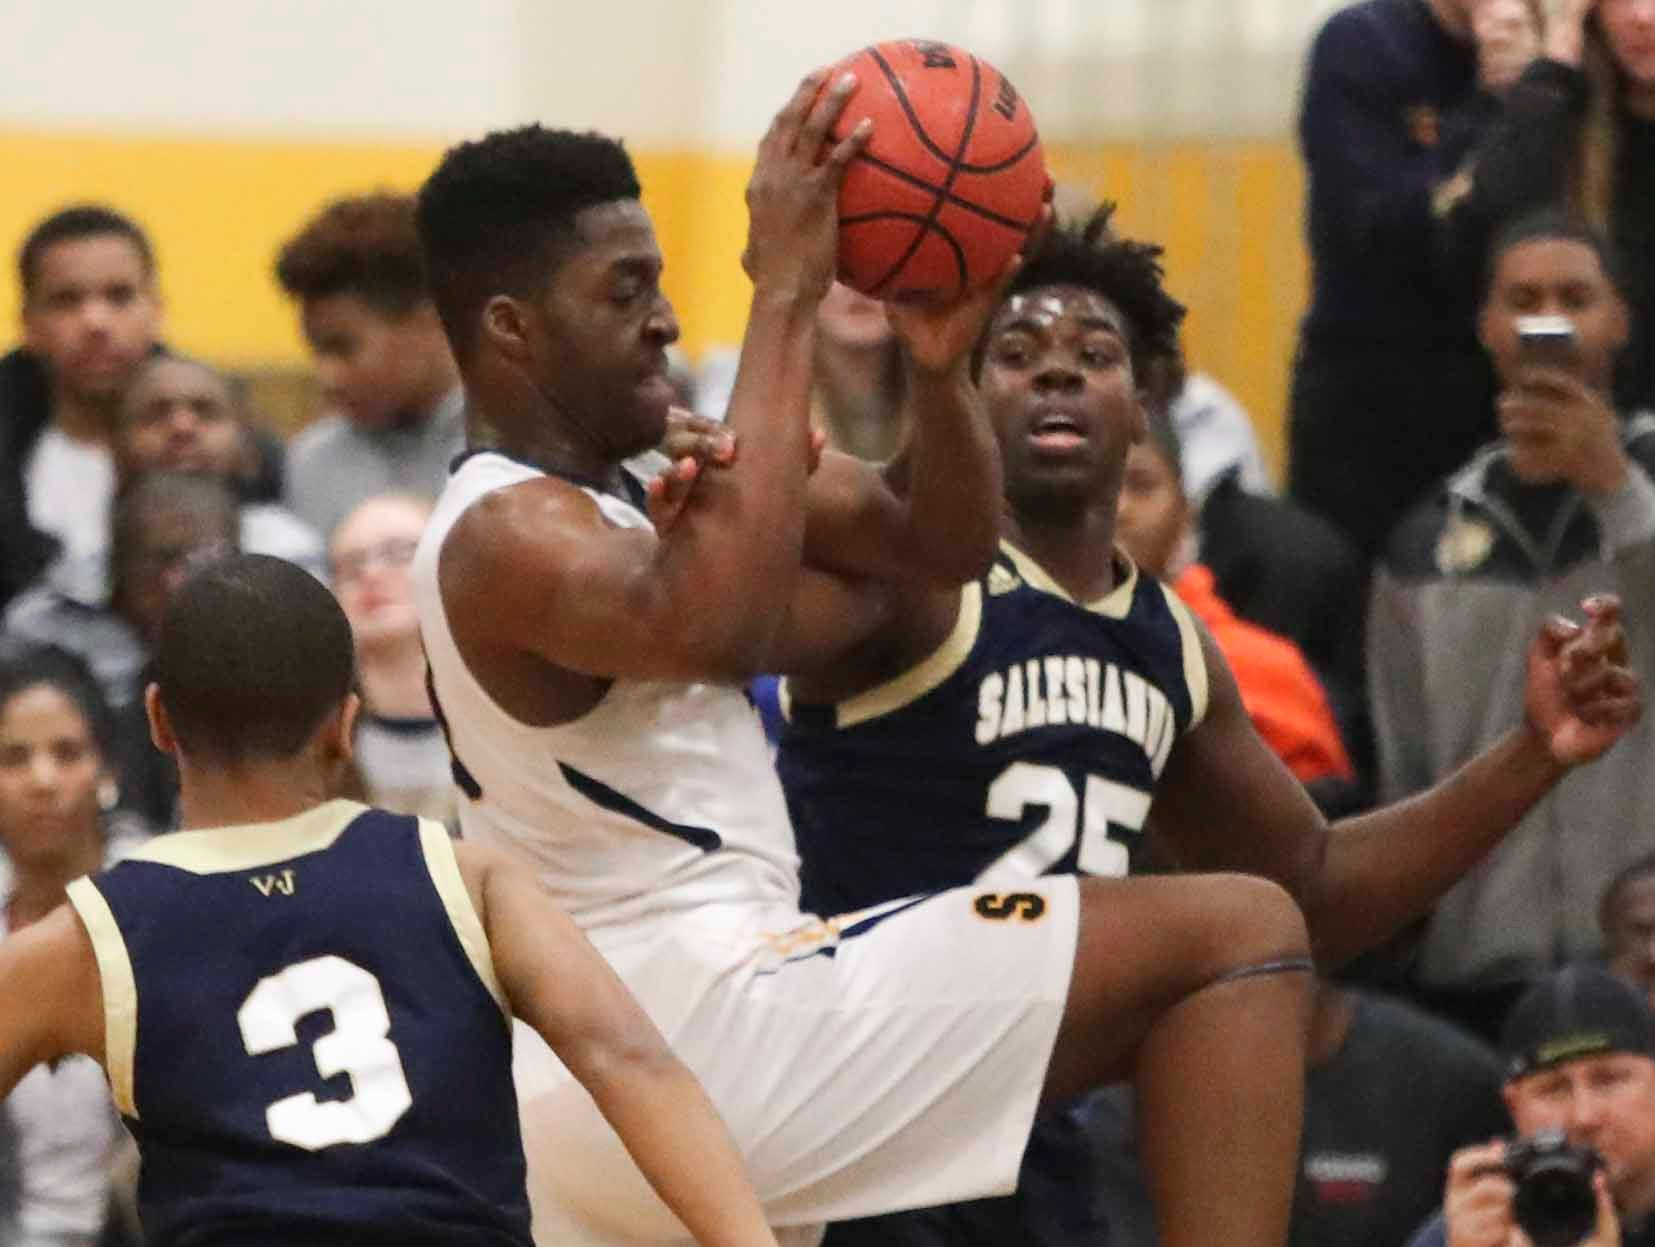 Sanford's Nnanna Njoku moves between Salesianum's Charles Parson (left) and James Yelbert during the Warriors' 65-47 win at home Friday.